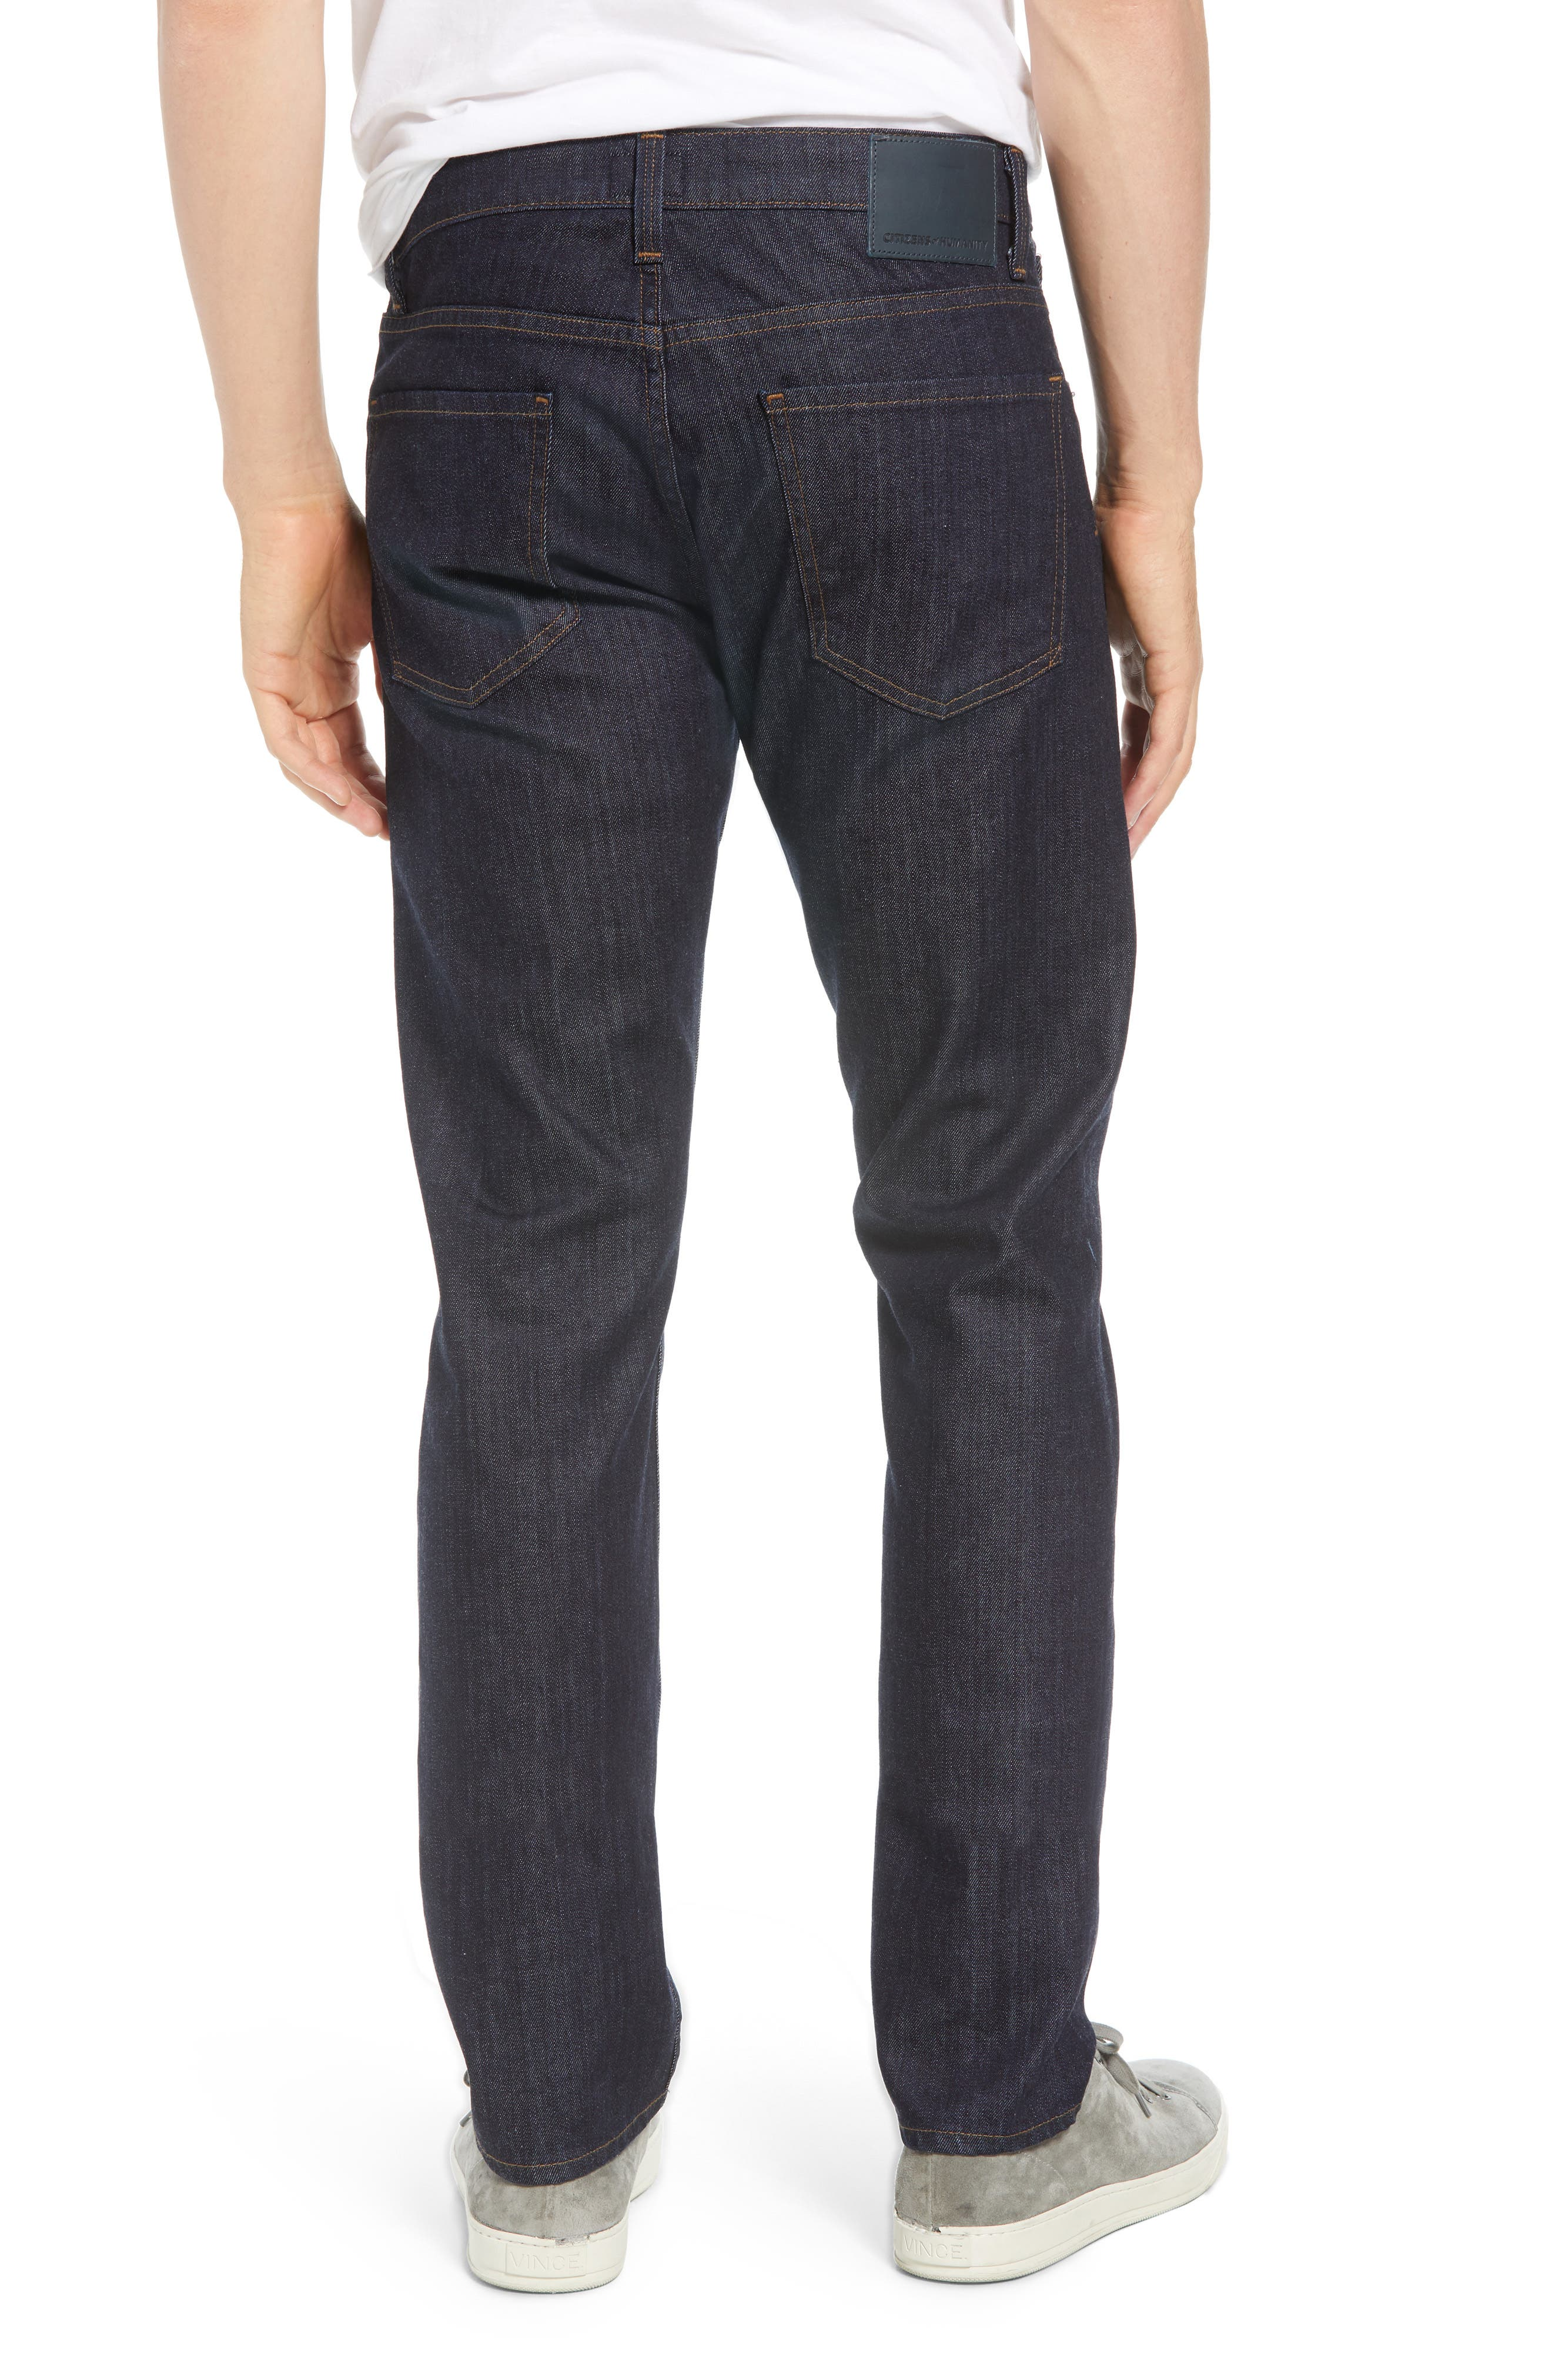 Bowery Slim Fit Jeans,                             Alternate thumbnail 2, color,                             SUPERIOR